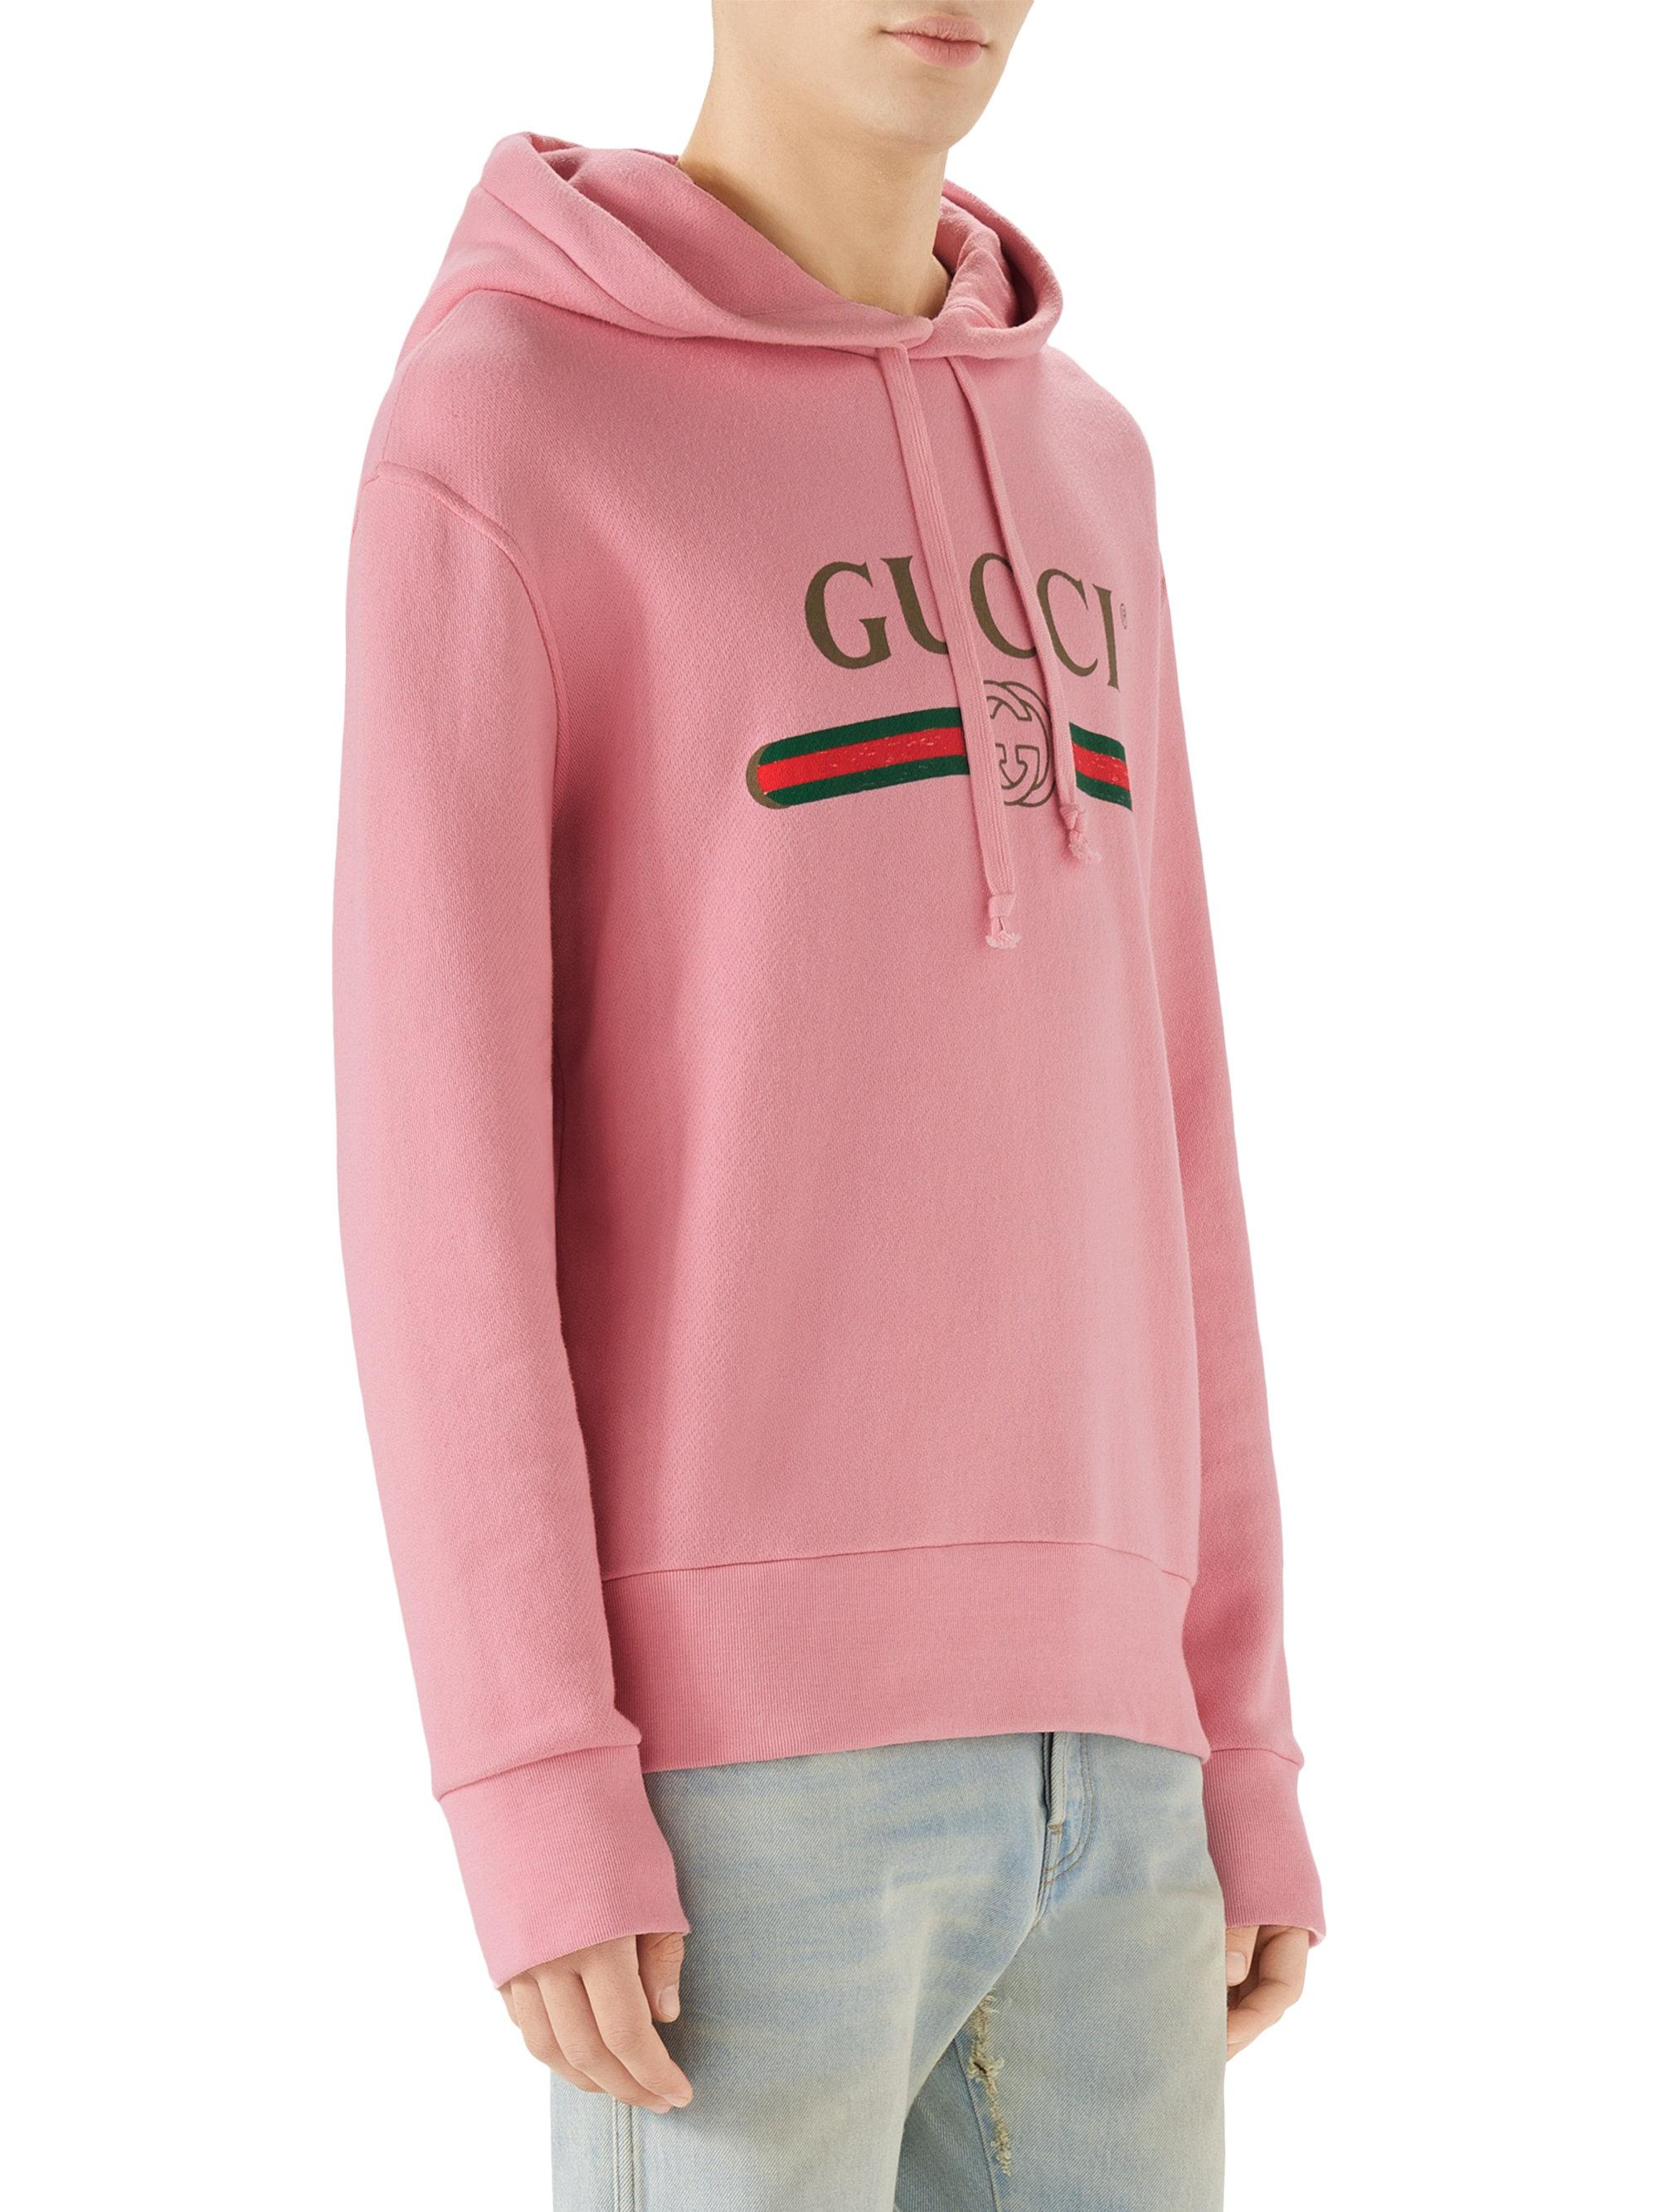 8450ab055b4 Gucci Hooded Dragon Graphic Sweatshirt in Pink for Men - Lyst